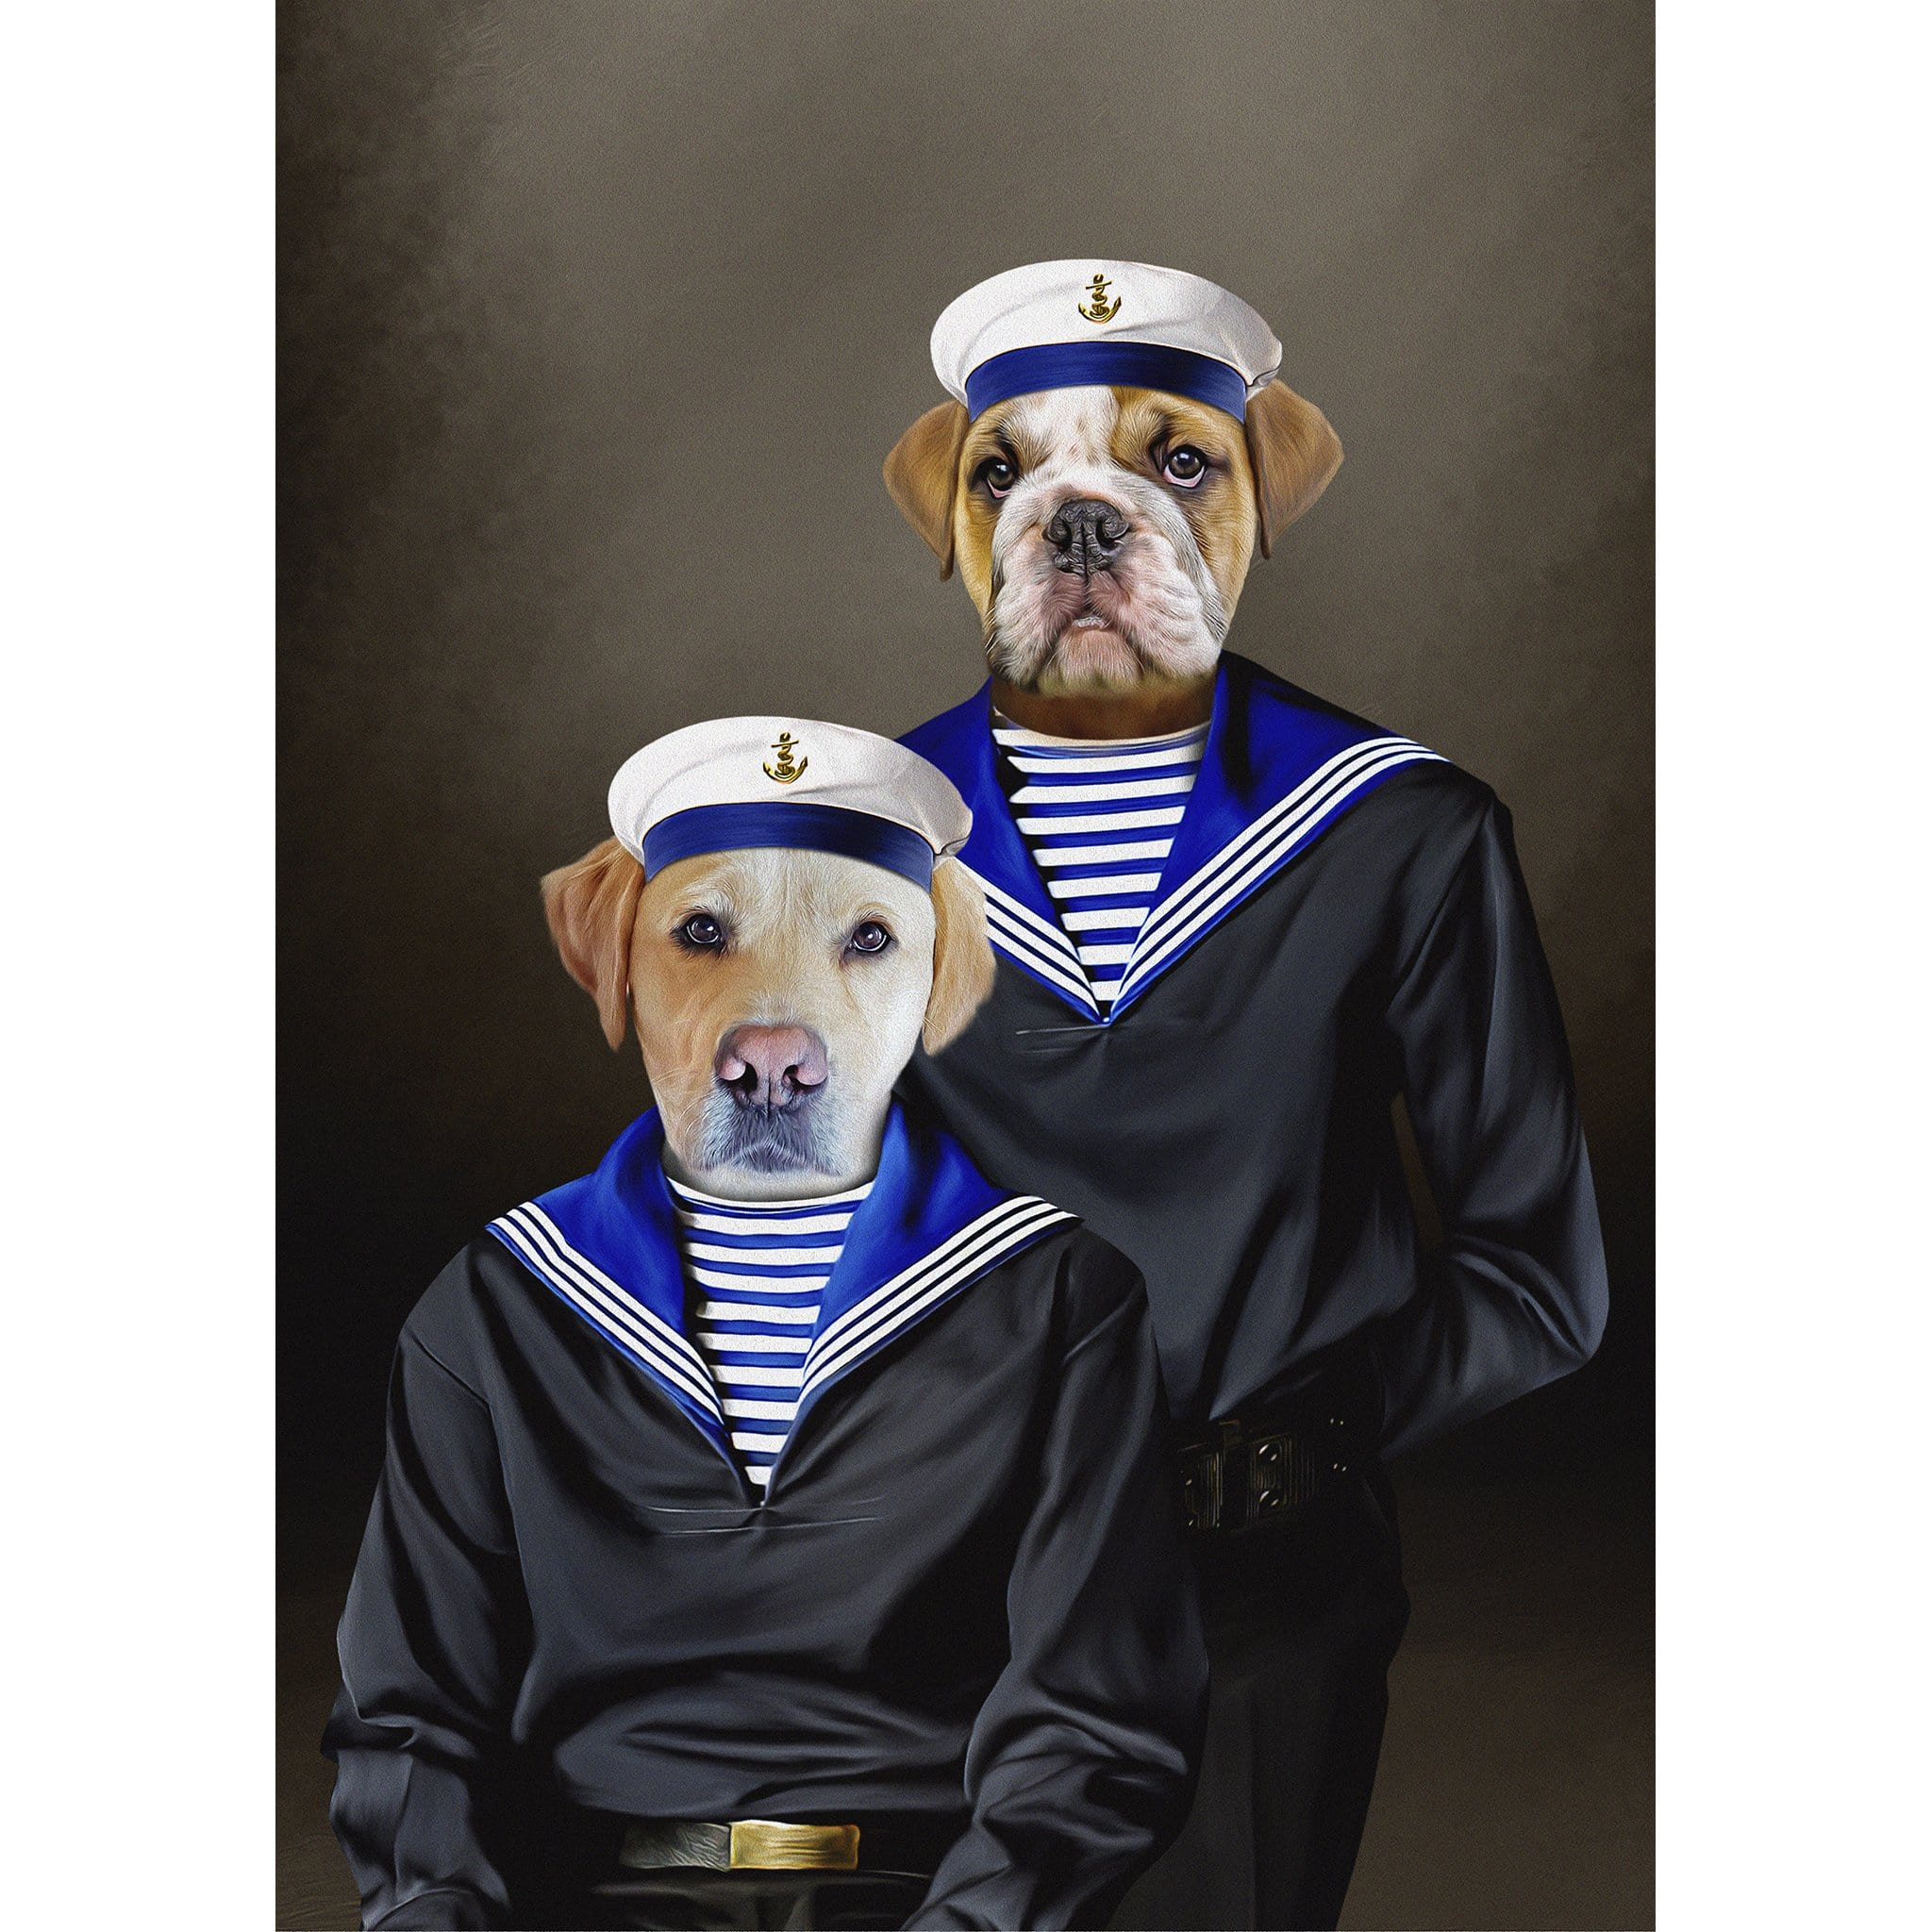 'The Sailors' 2 Pet Digital Portrait